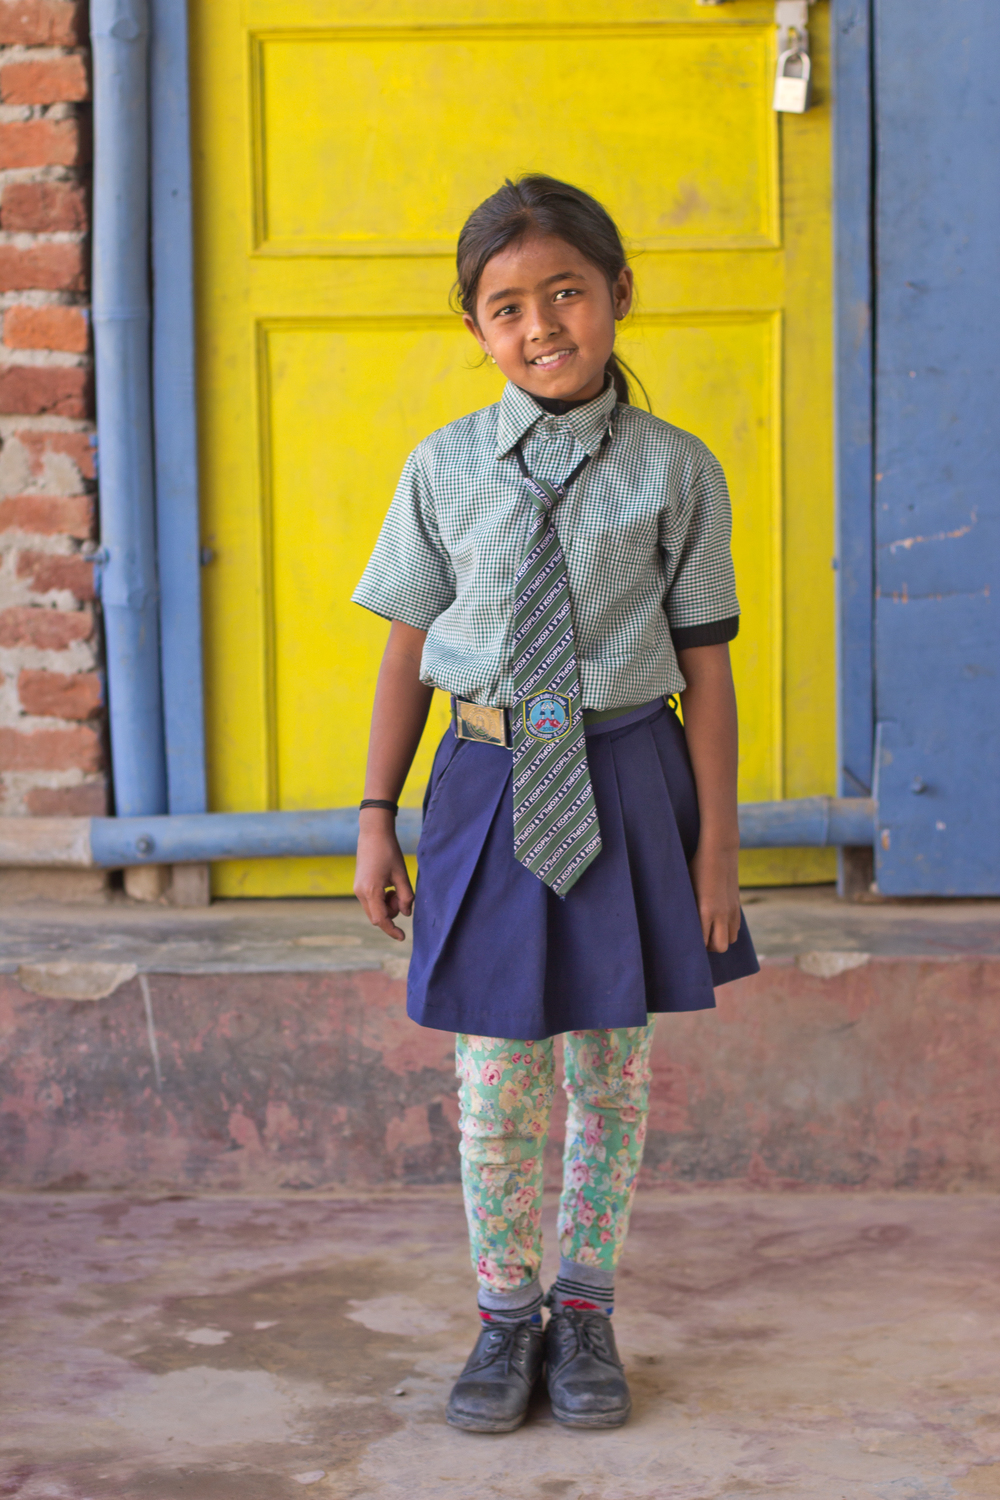 She's the First Scholar Aliza T.M. poses in Nepal, March 2015. (photo by Kate Lord)